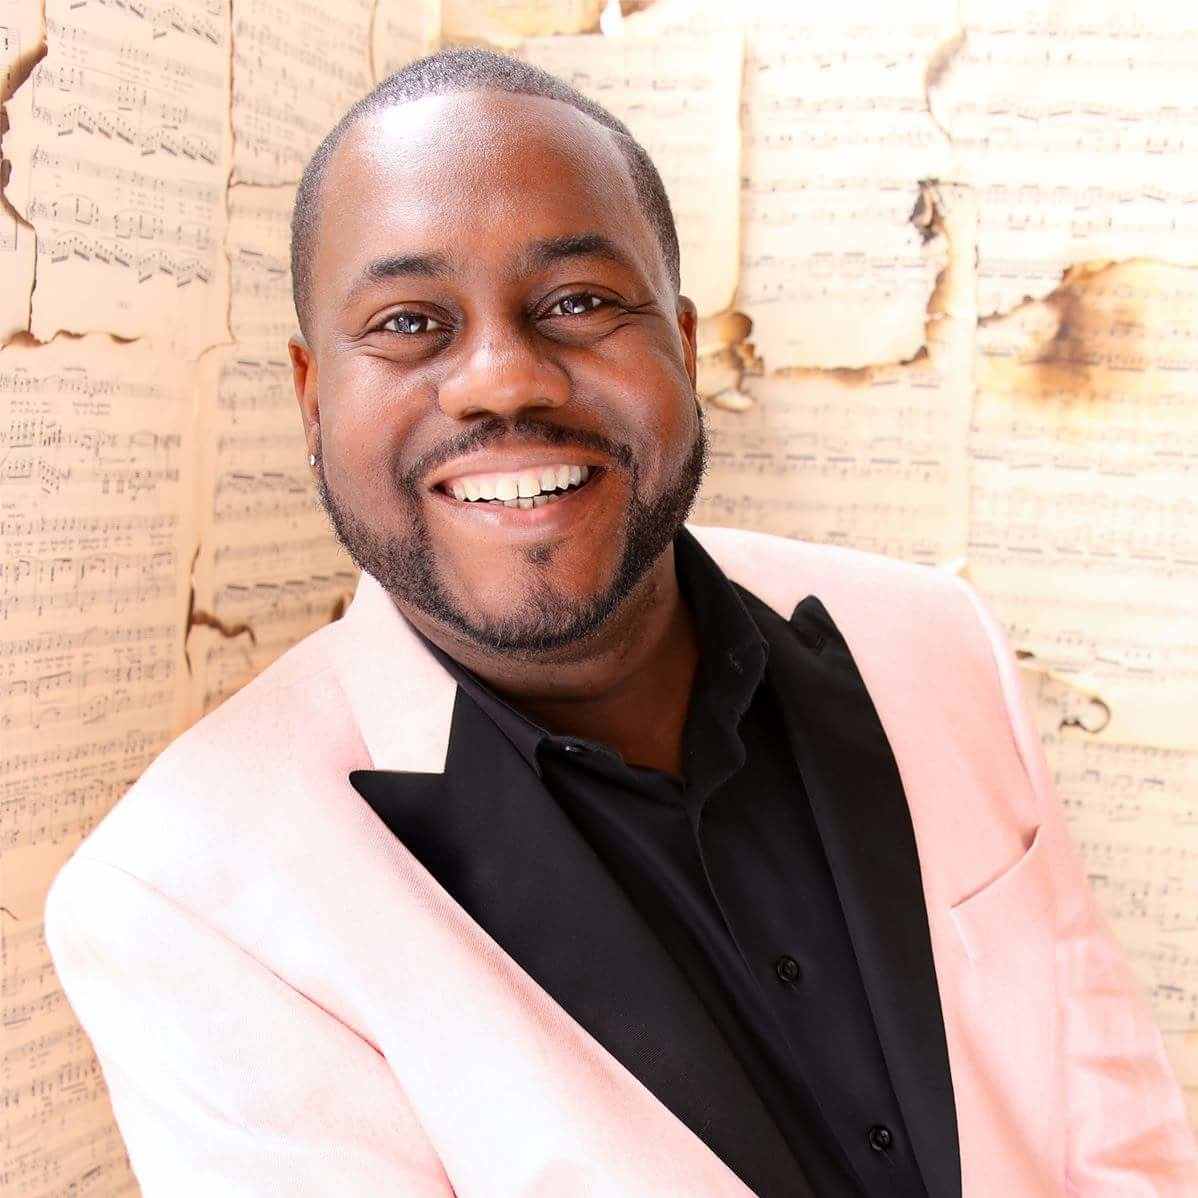 Kenneth Overton, Baritone